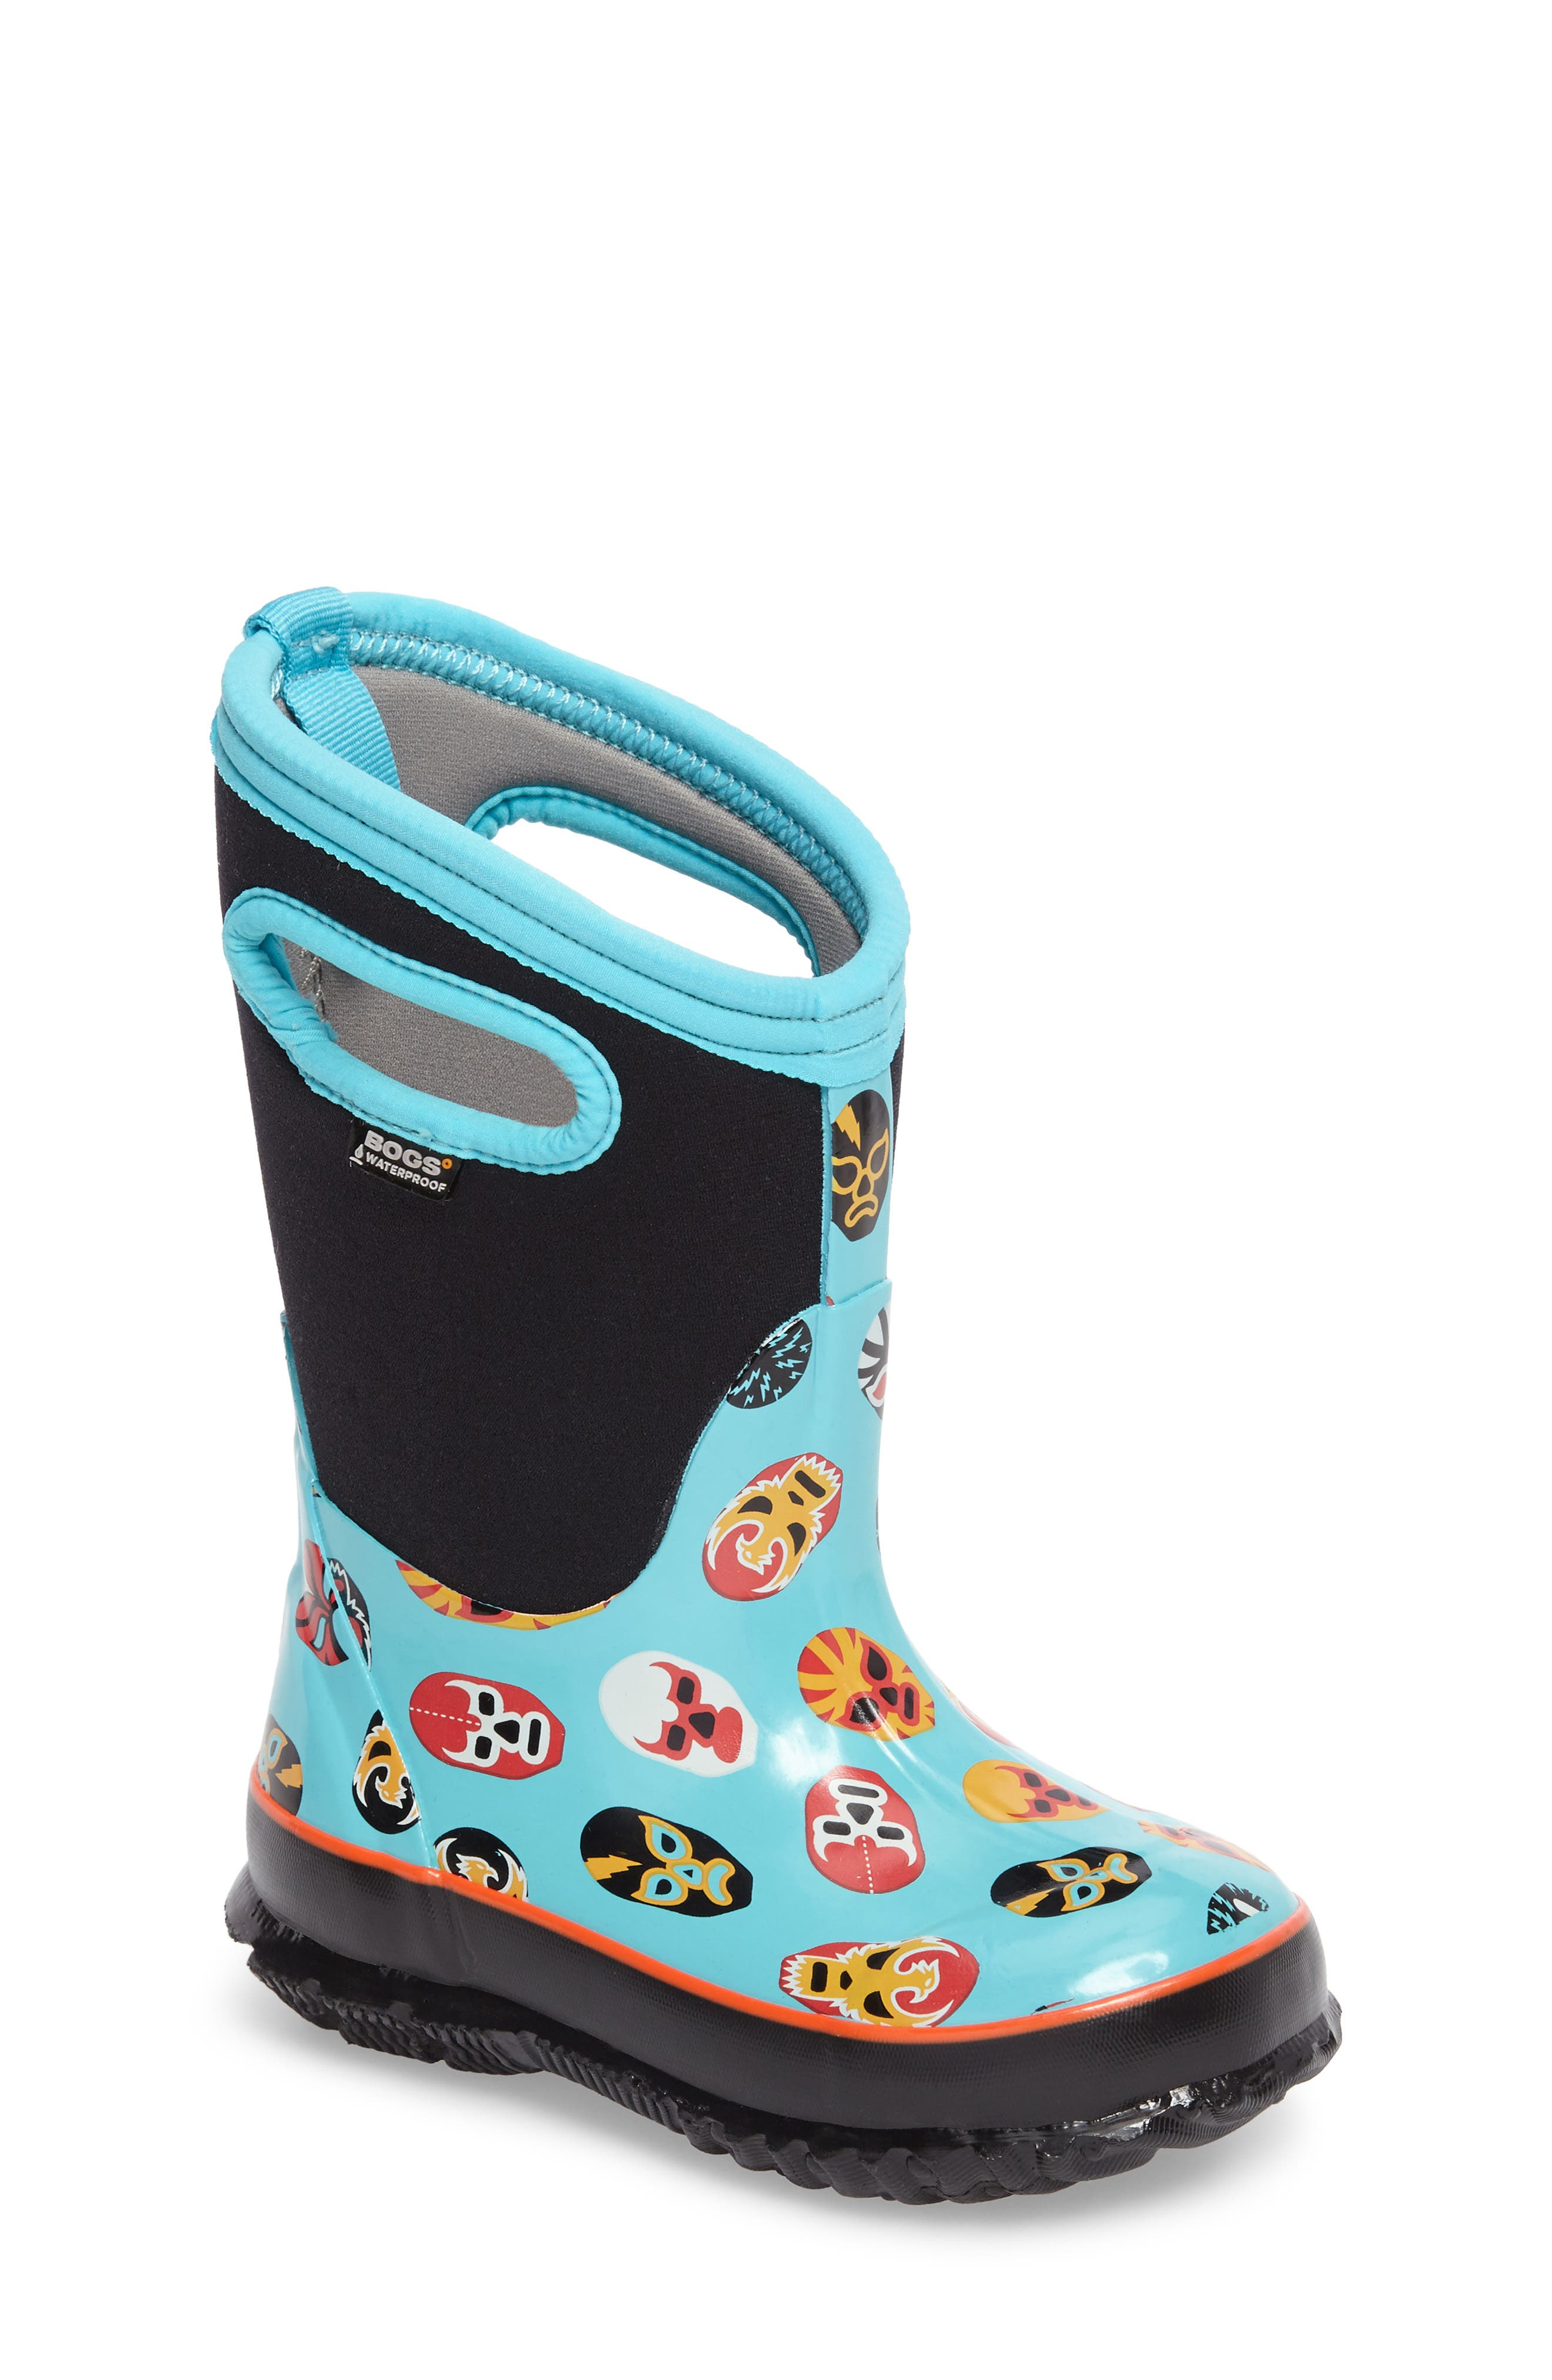 Classic Mask Insulated Waterproof Boot,                             Main thumbnail 1, color,                             409